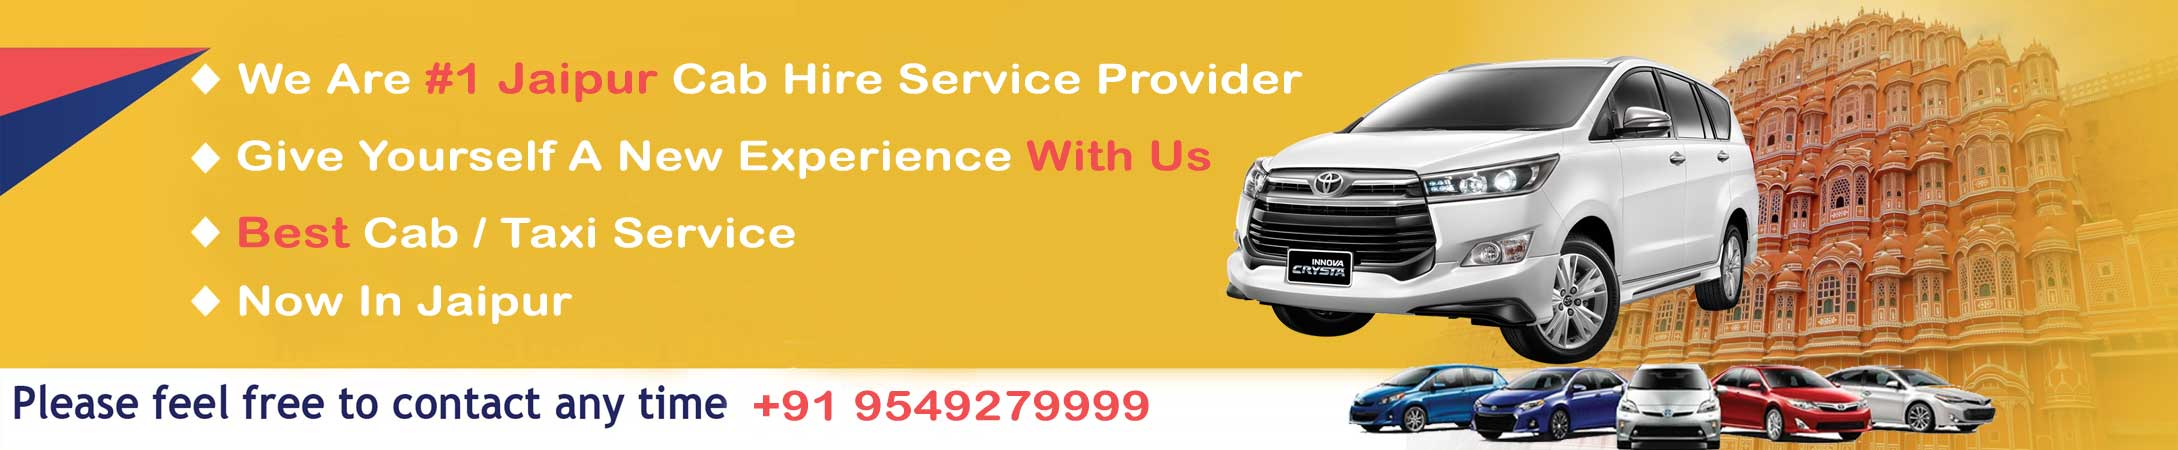 Car Hire Jaipur